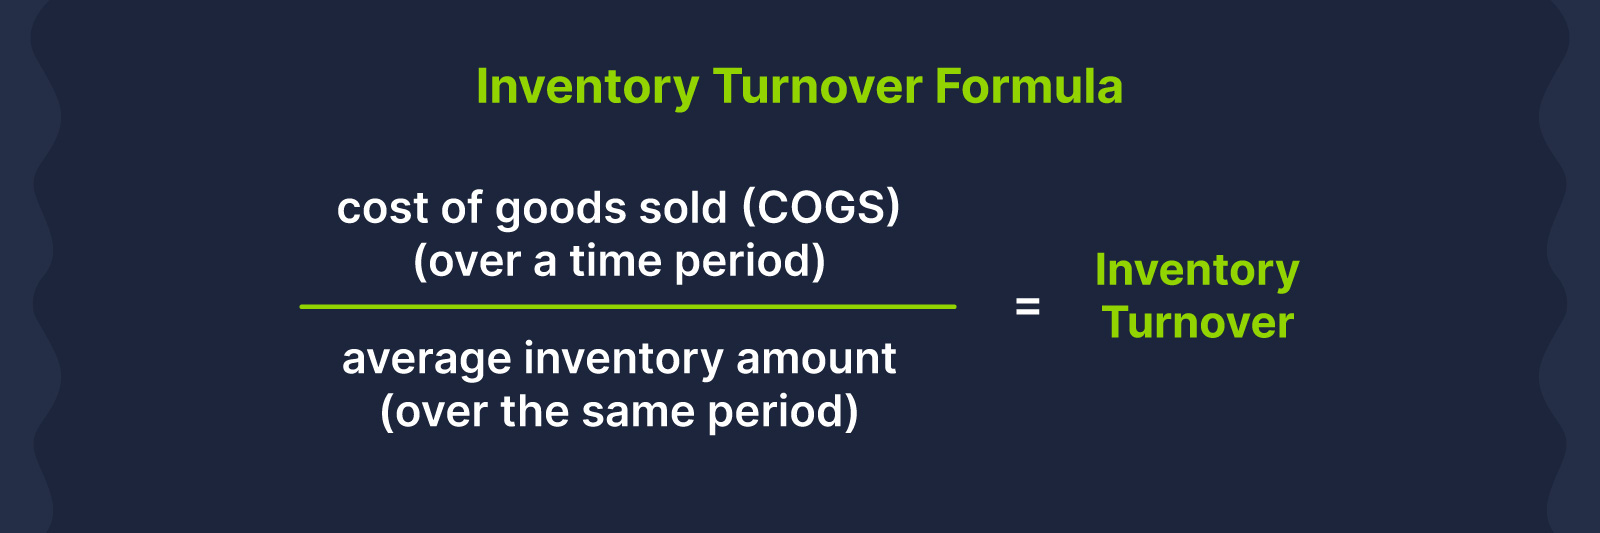 inventory turnover formula is COGS divided by average inventory amount